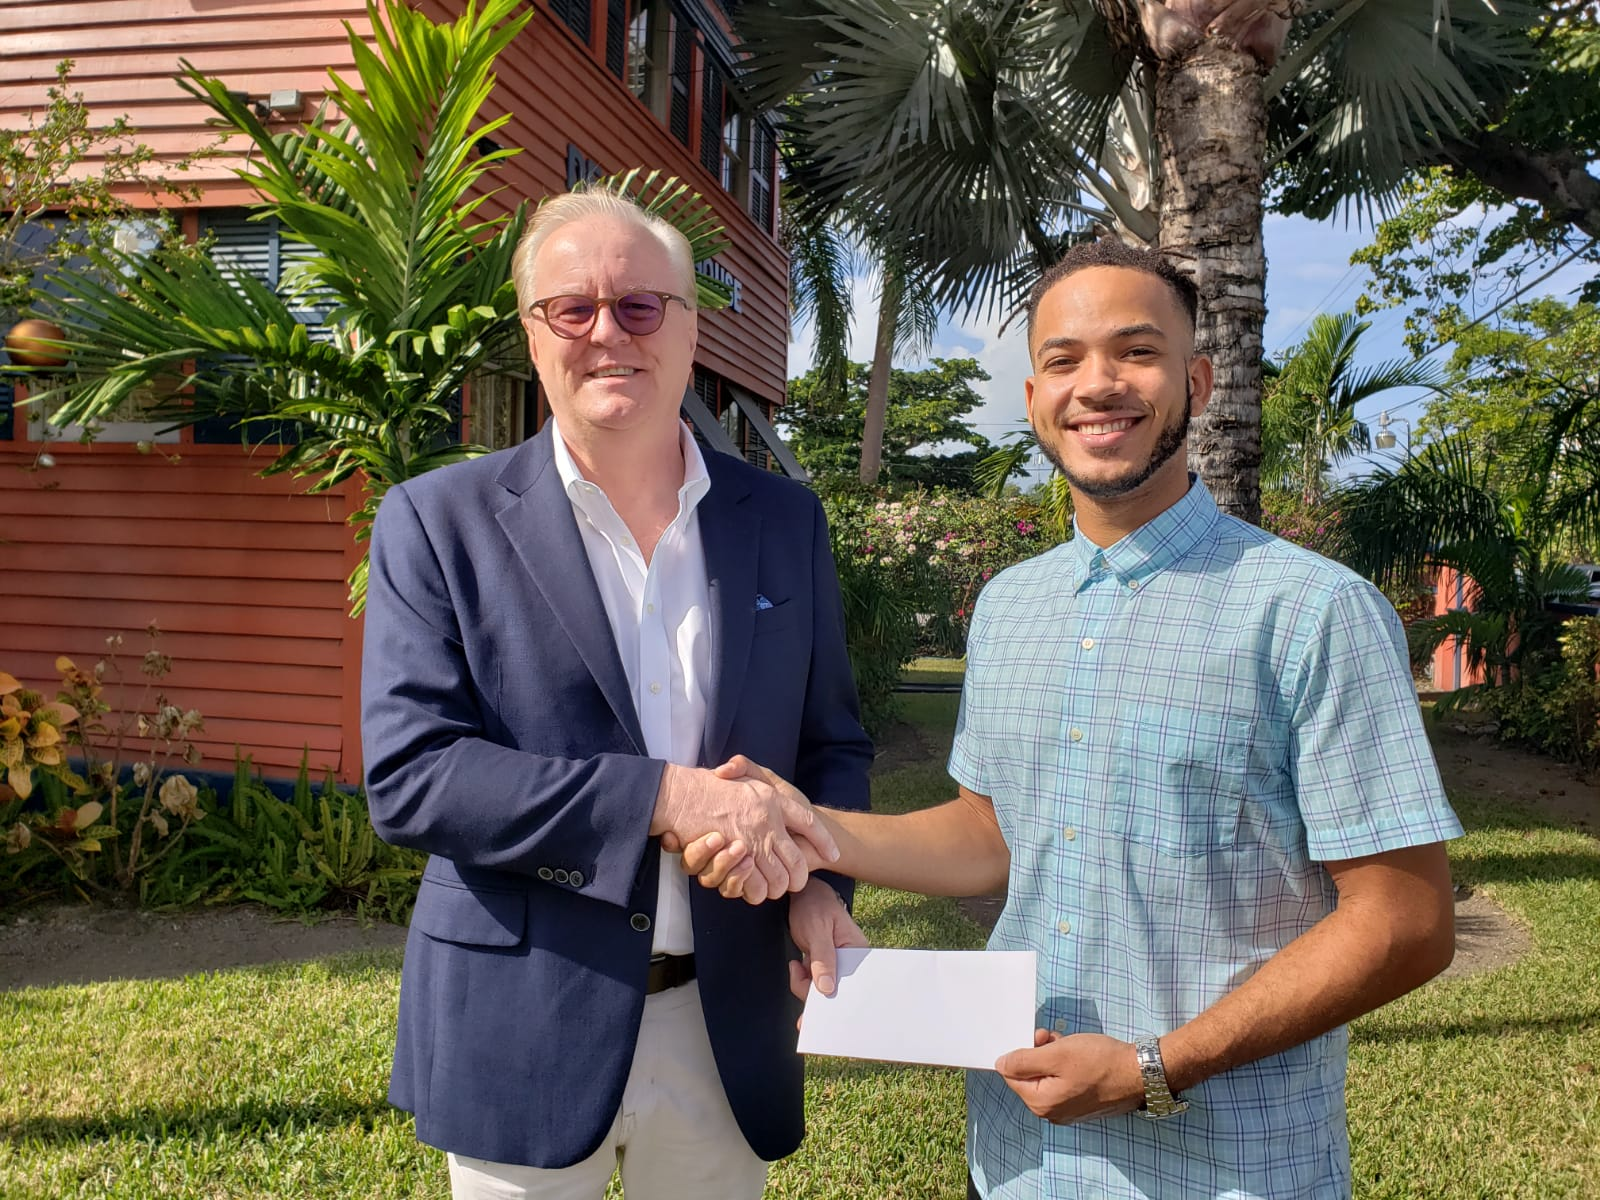 Global Ports Holding donates $10,000 to Nassau Night Market